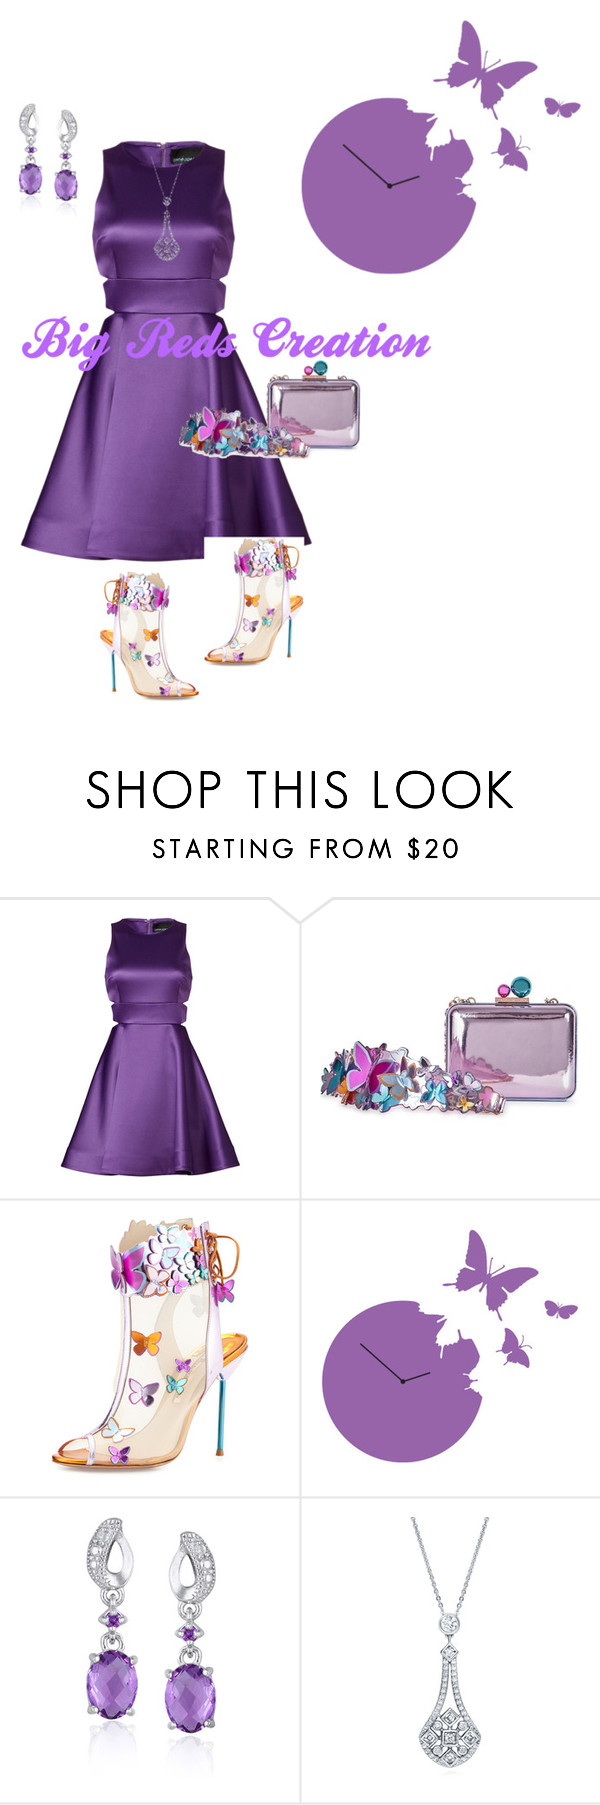 """Purple Butterfly"" by bigreds ❤ liked on Polyvore featuring Cynthia Rowley, Sophia Webster, Diamantini & Domeniconi, Glitzy Rocks and BERRICLE"